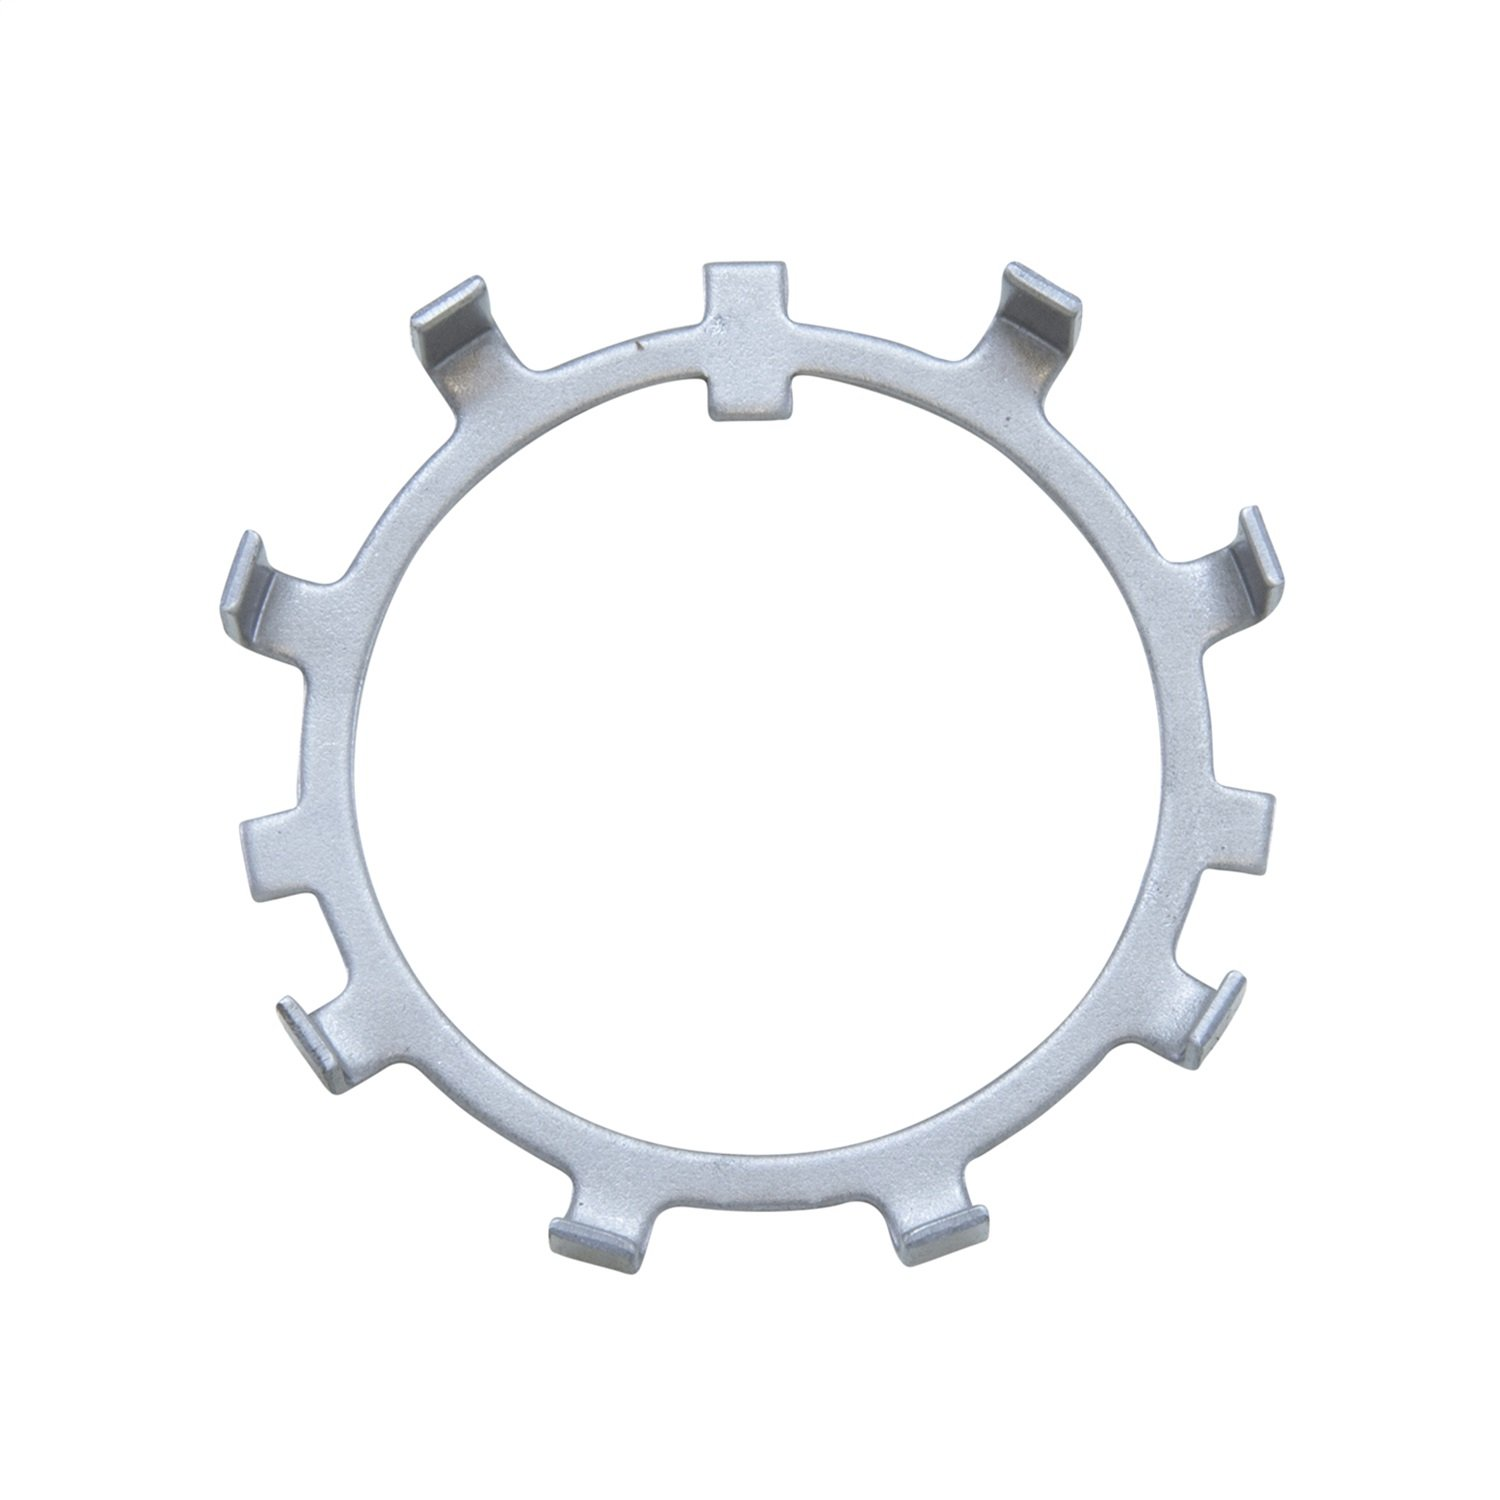 Yukon (YSPSP-007) 2.030'' I.D. Spindle Nut Retainer by Yukon Gear (Image #1)